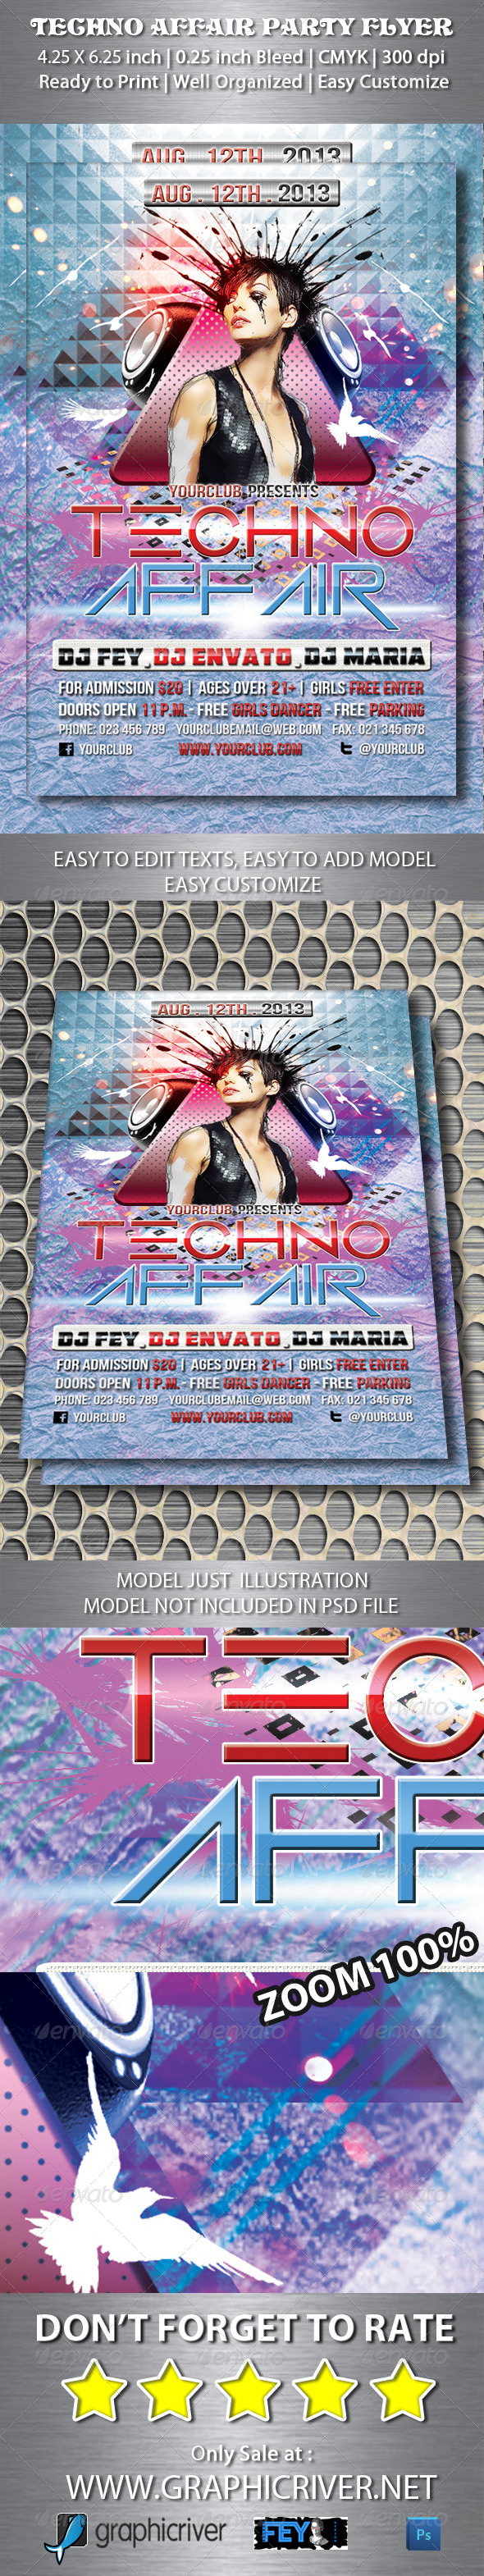 GraphicRiver Techno Affair Party Flyer 5352521